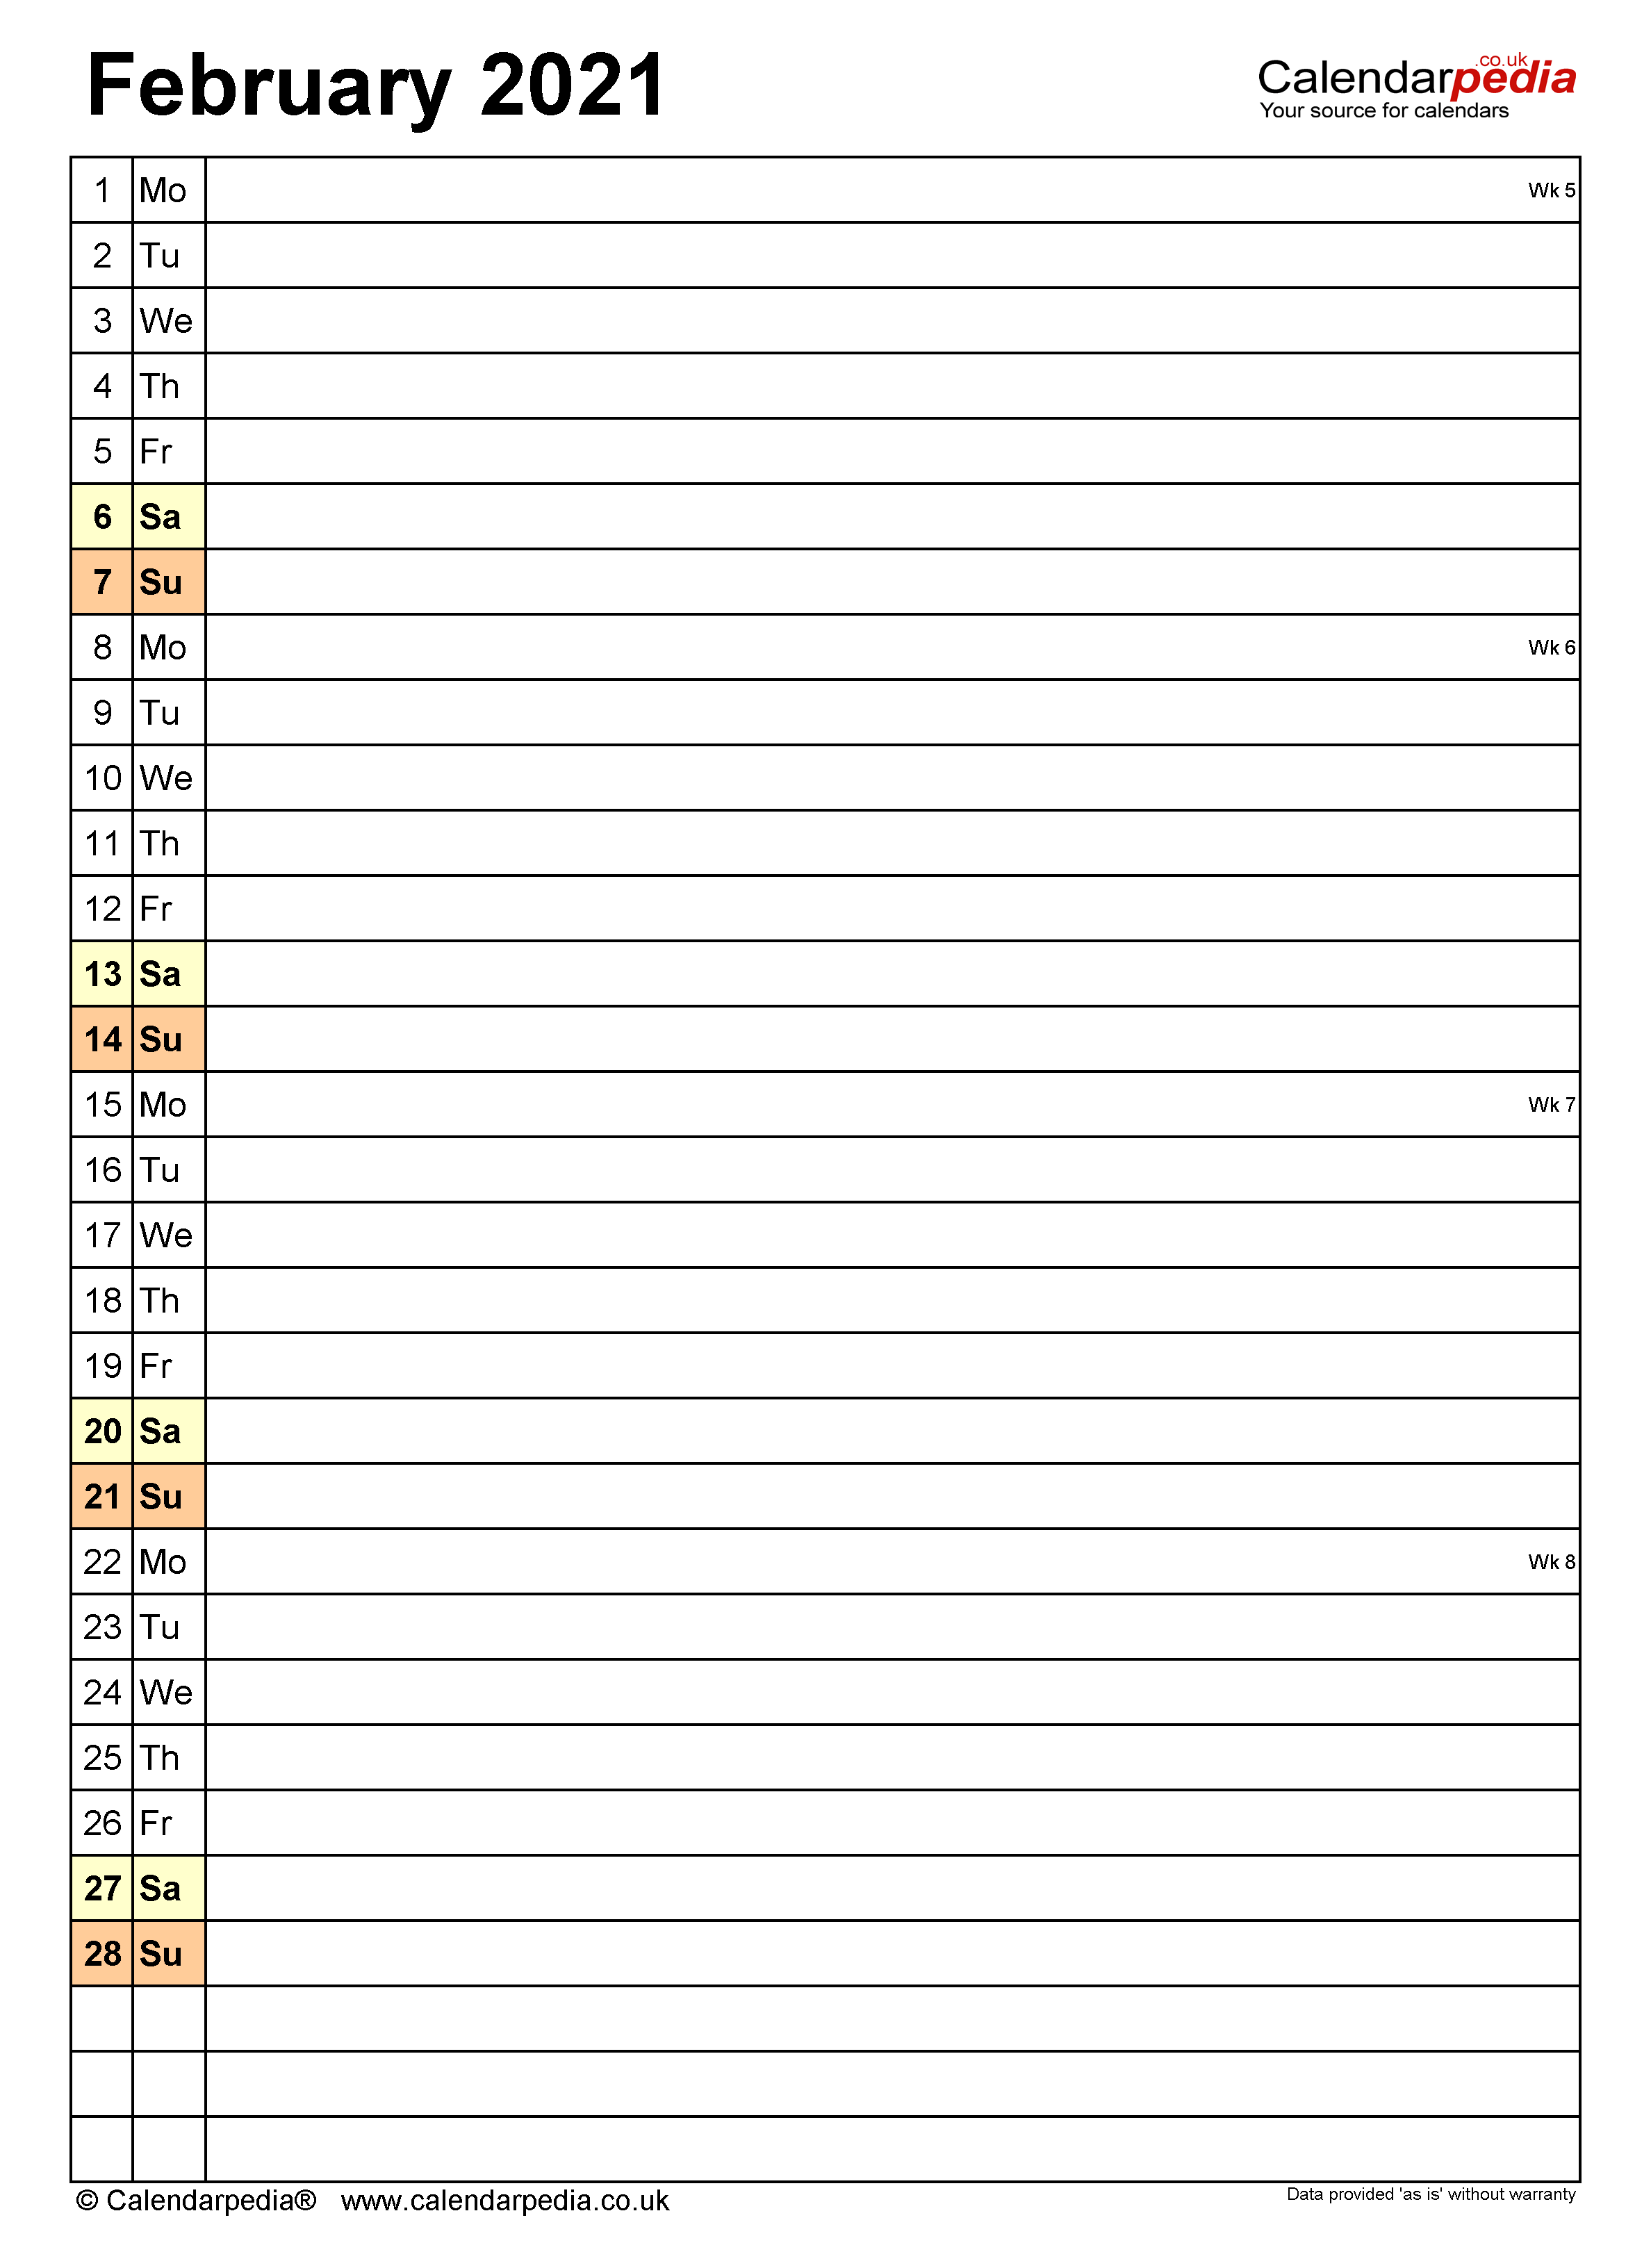 Calendar February 2021 (UK) with Excel, Word and PDF templates